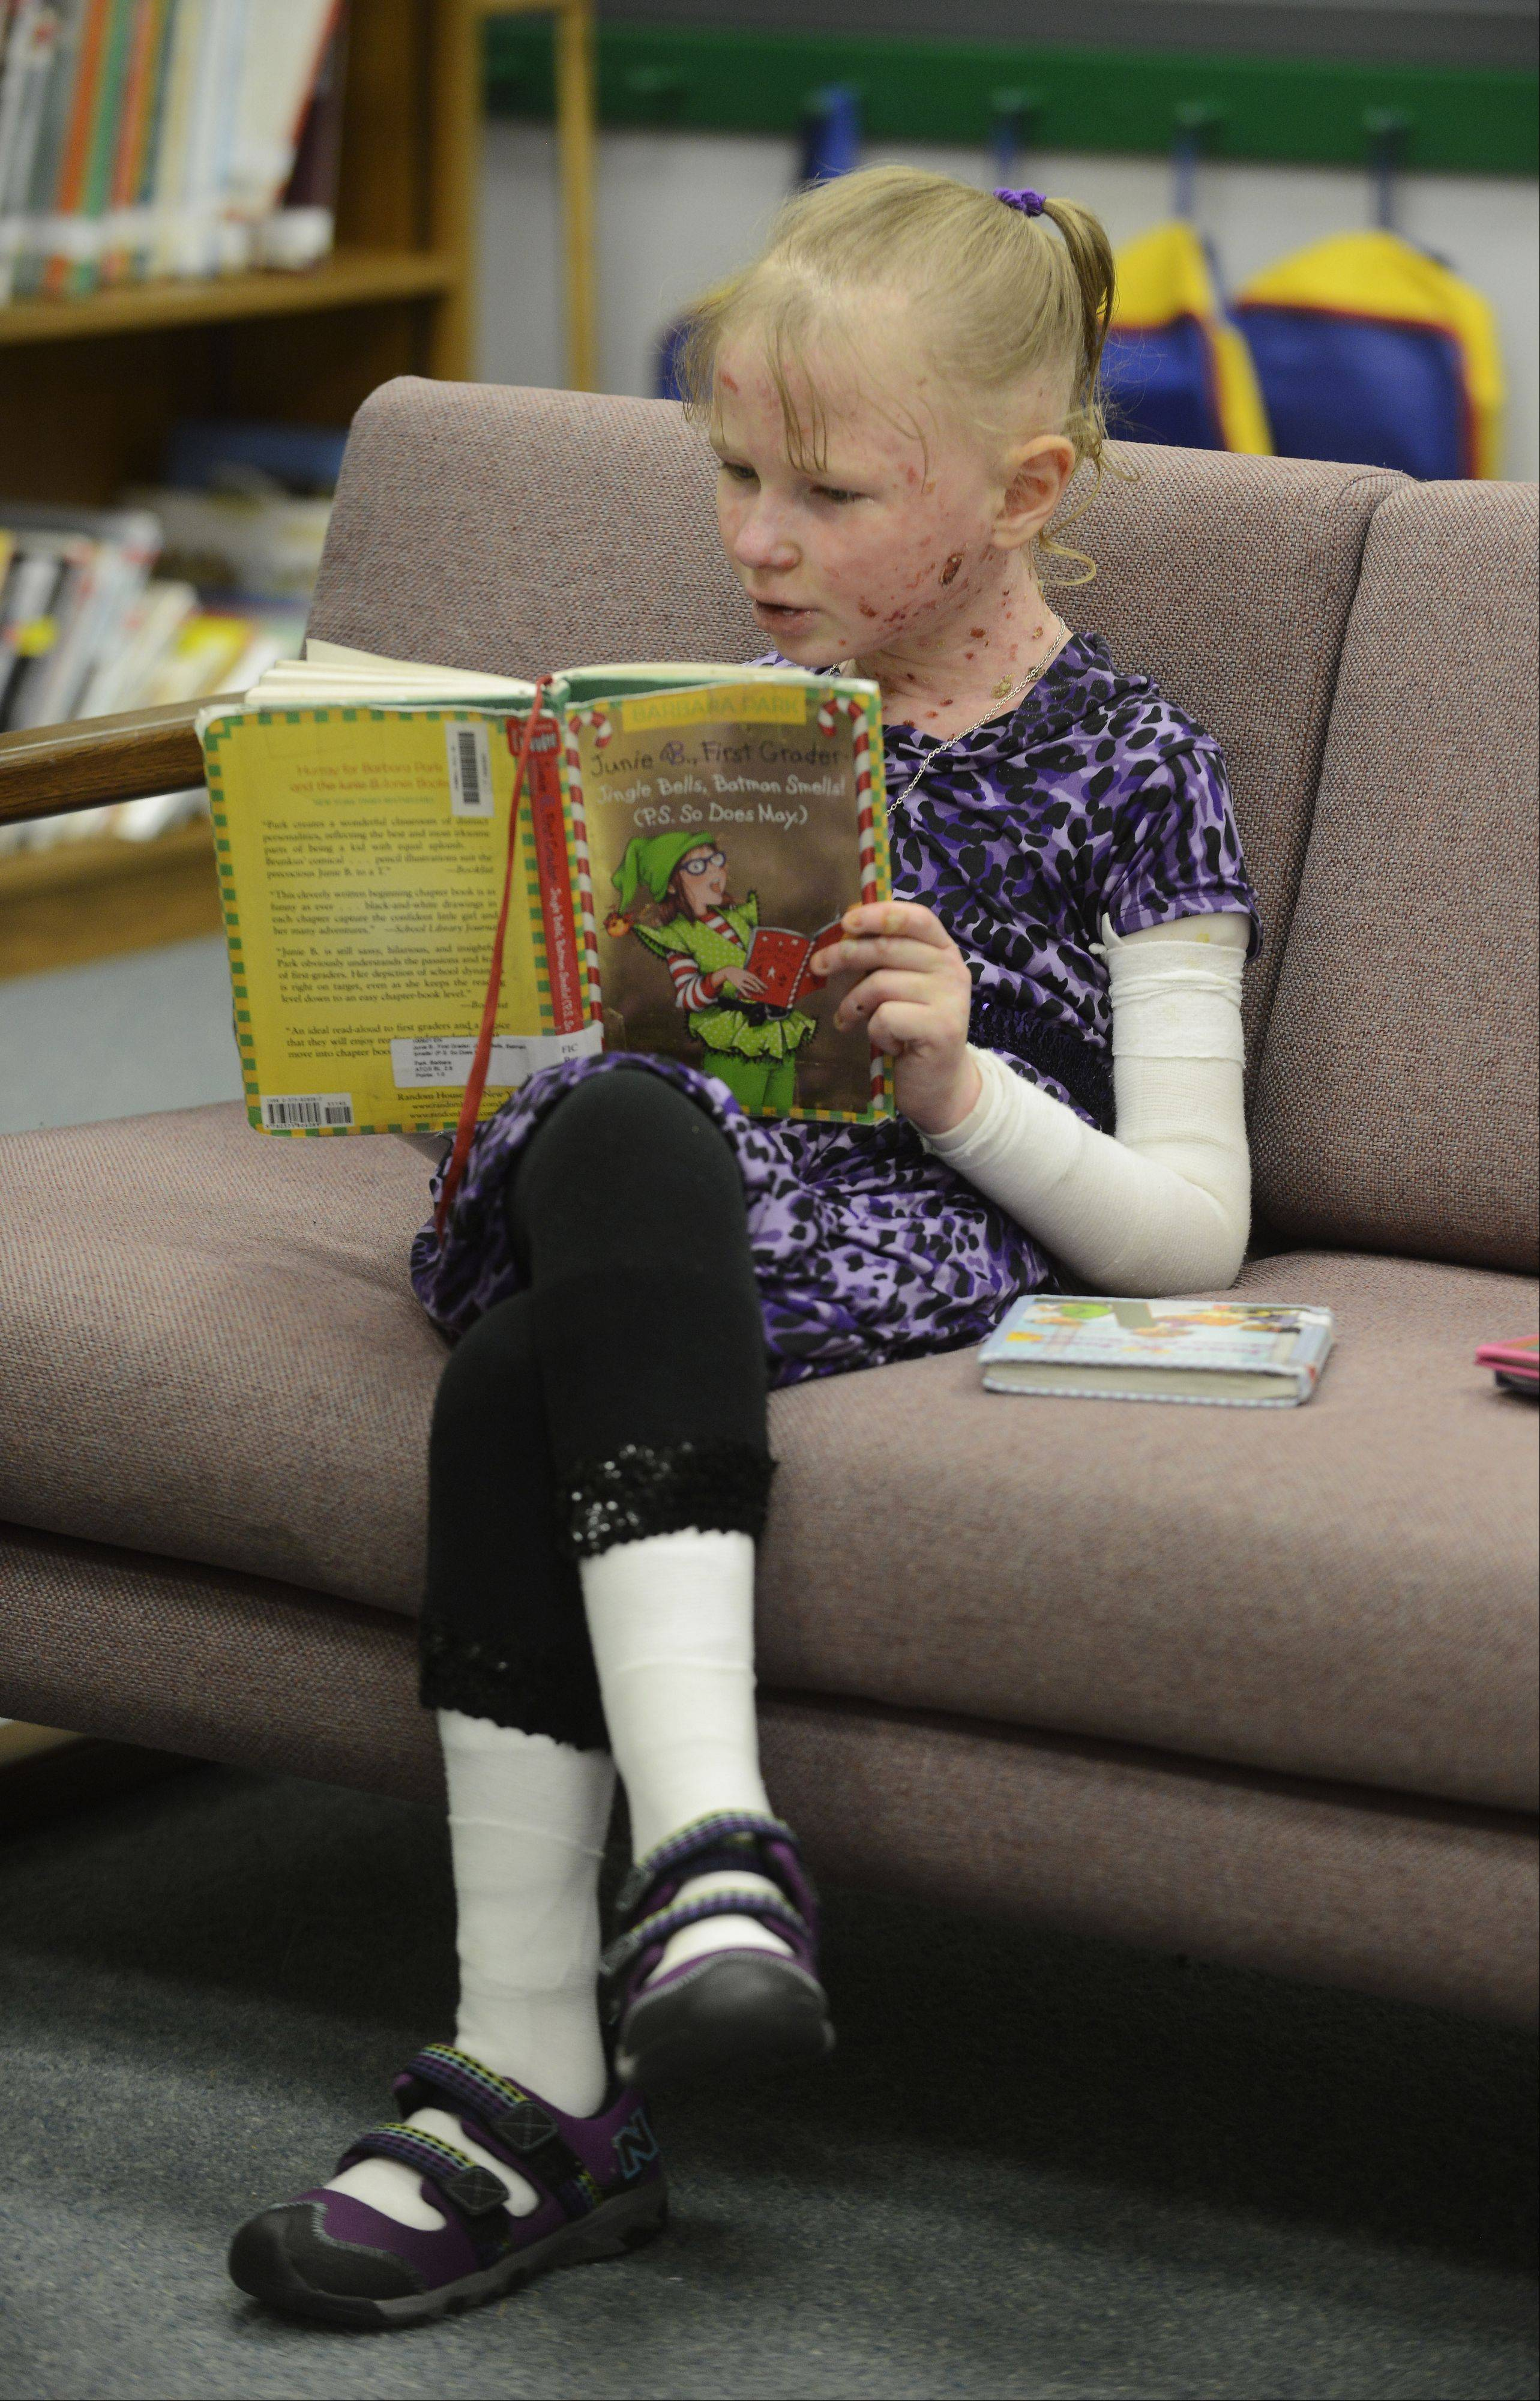 An avid reader, 2nd-grader Caroline Provost starts a book by herself while waiting for friends at Kimball Hill School in Rolling Meadows.